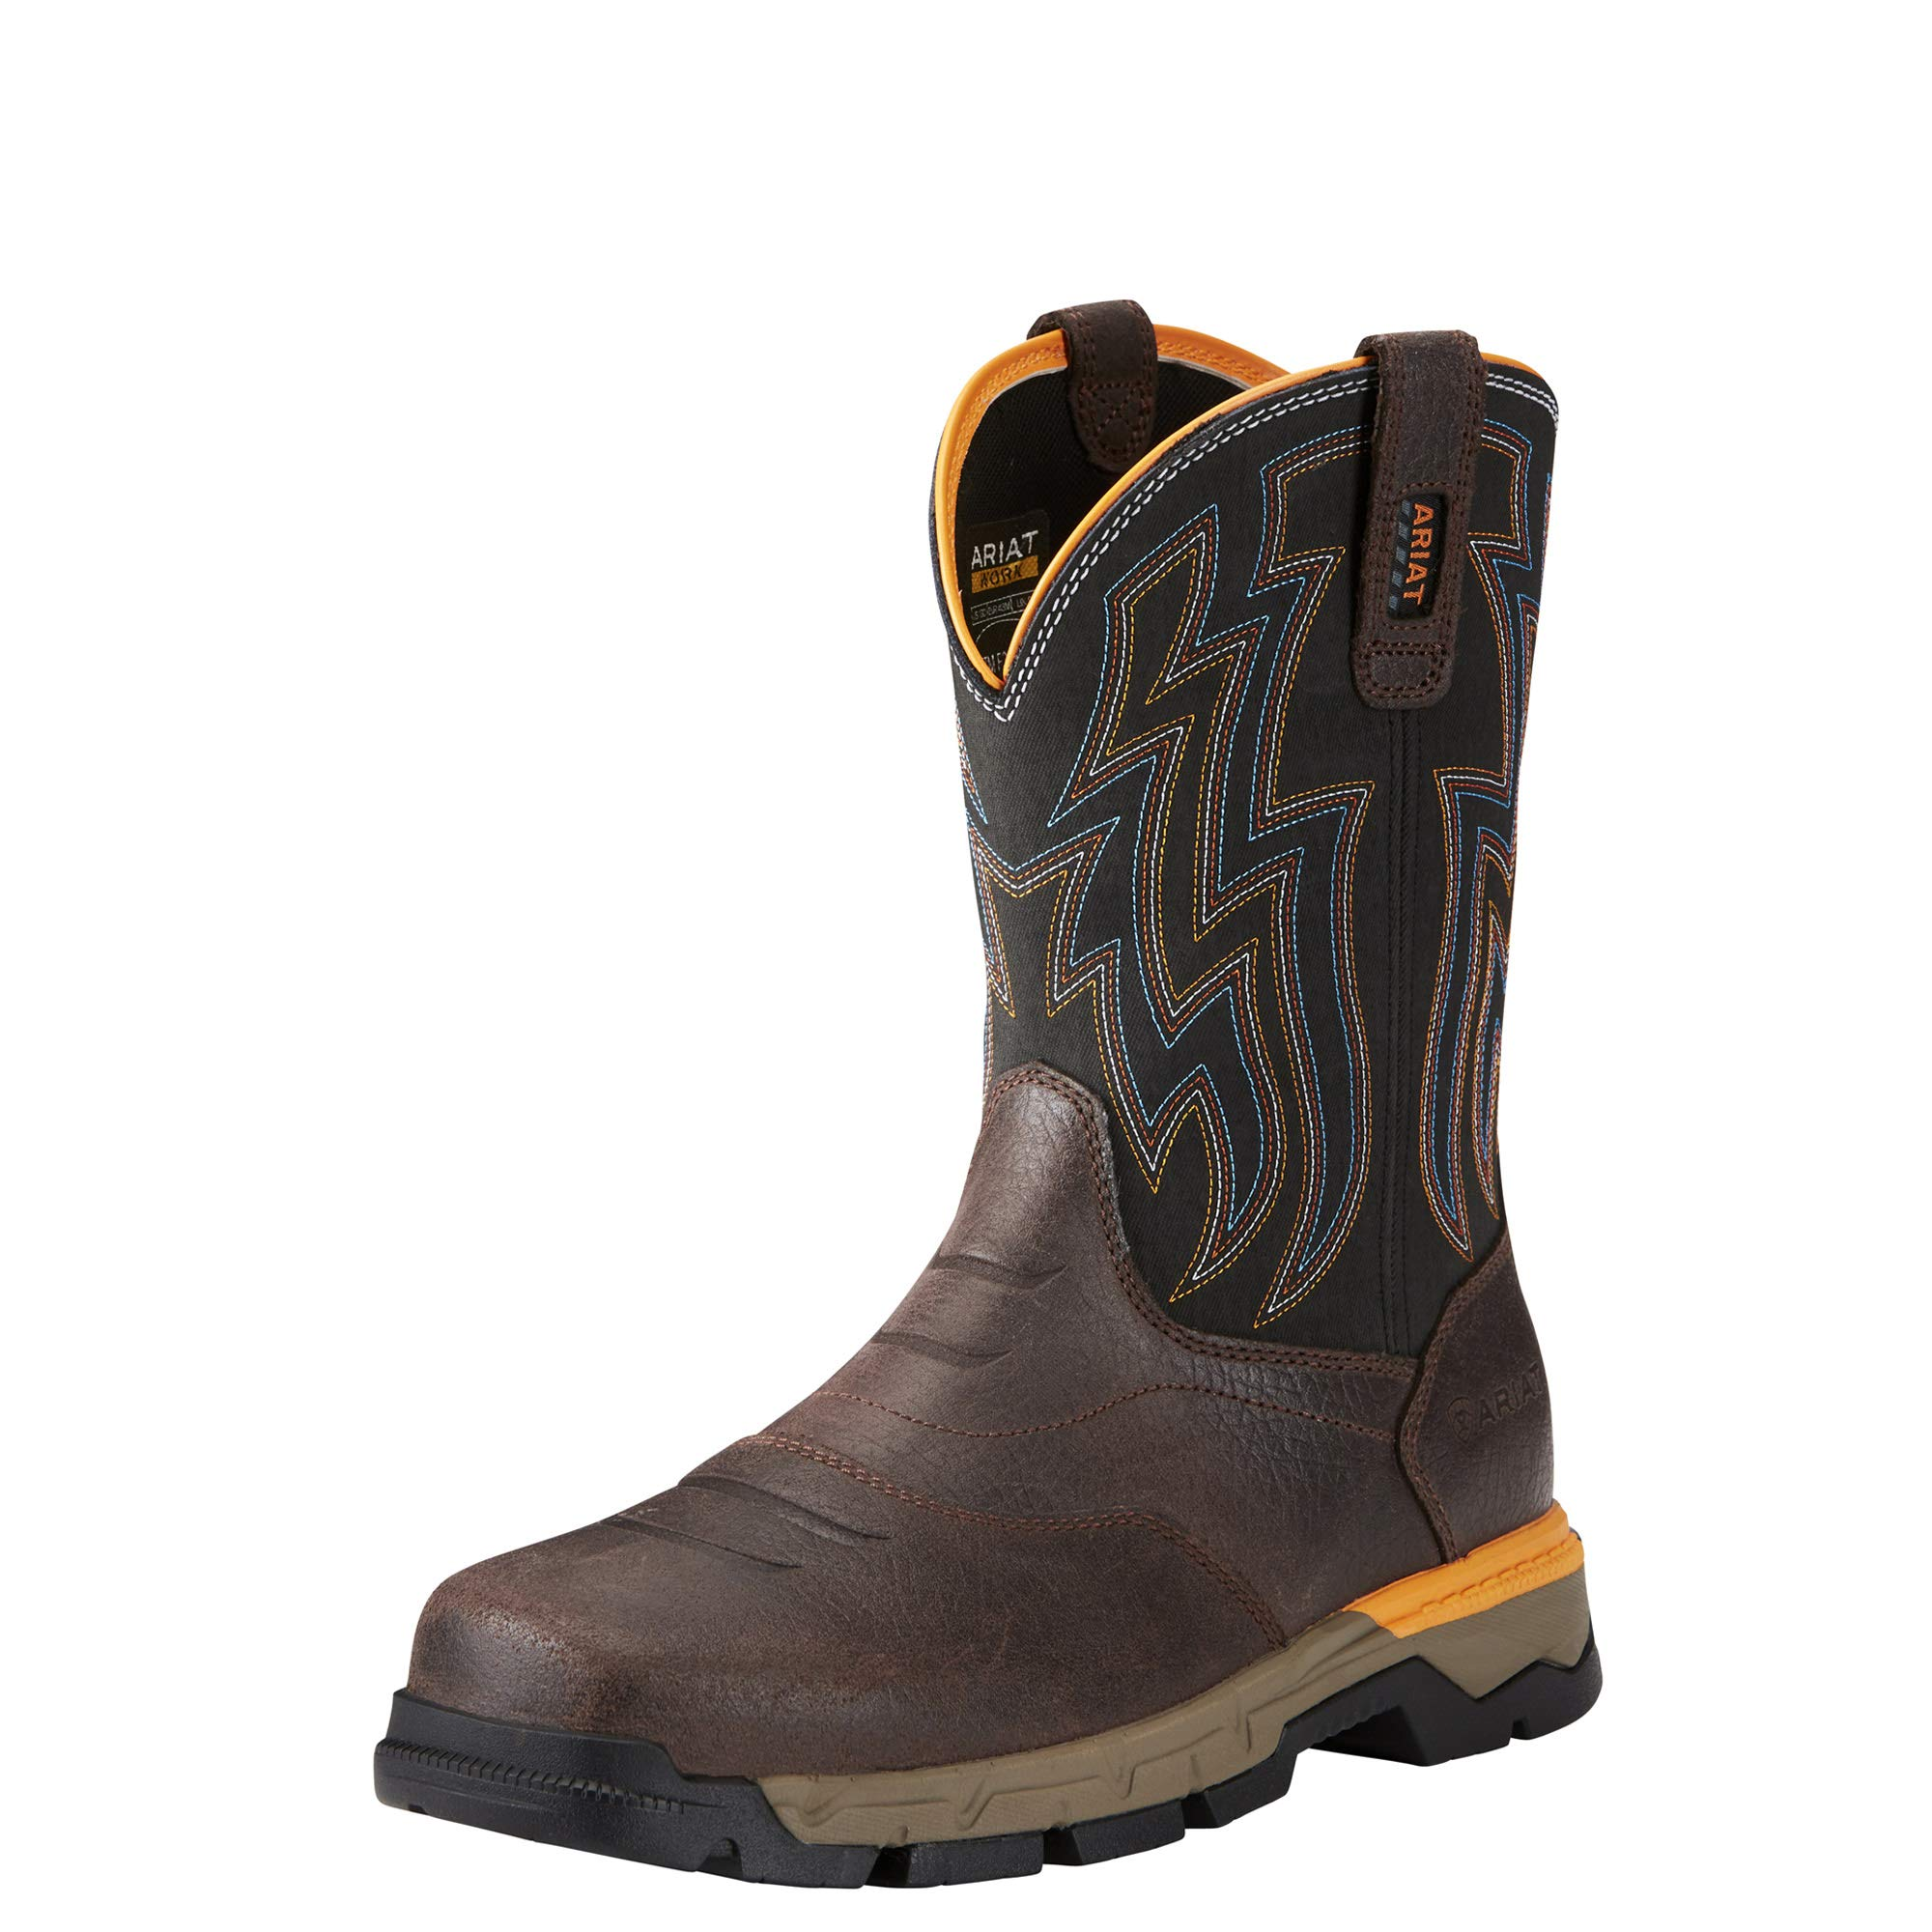 Ariat Work Men's REBAR Flex Western Work Boot, Chocolate Brown, 11.5 E US